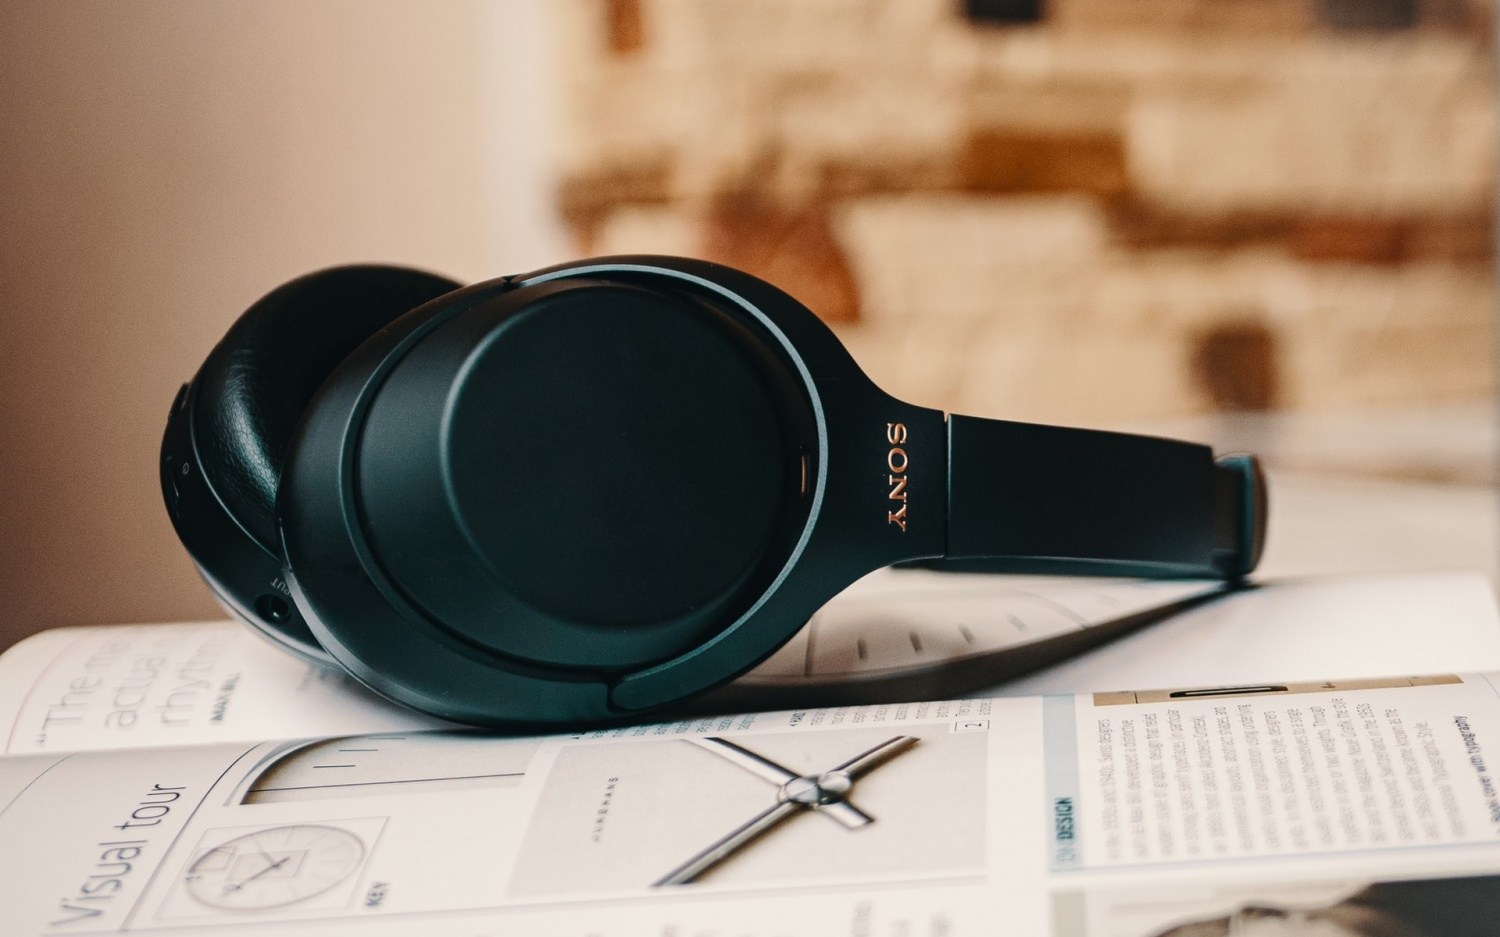 Sony WH-1000XM4 vs Sony WH-1000XM3: Is Newer Always Better?